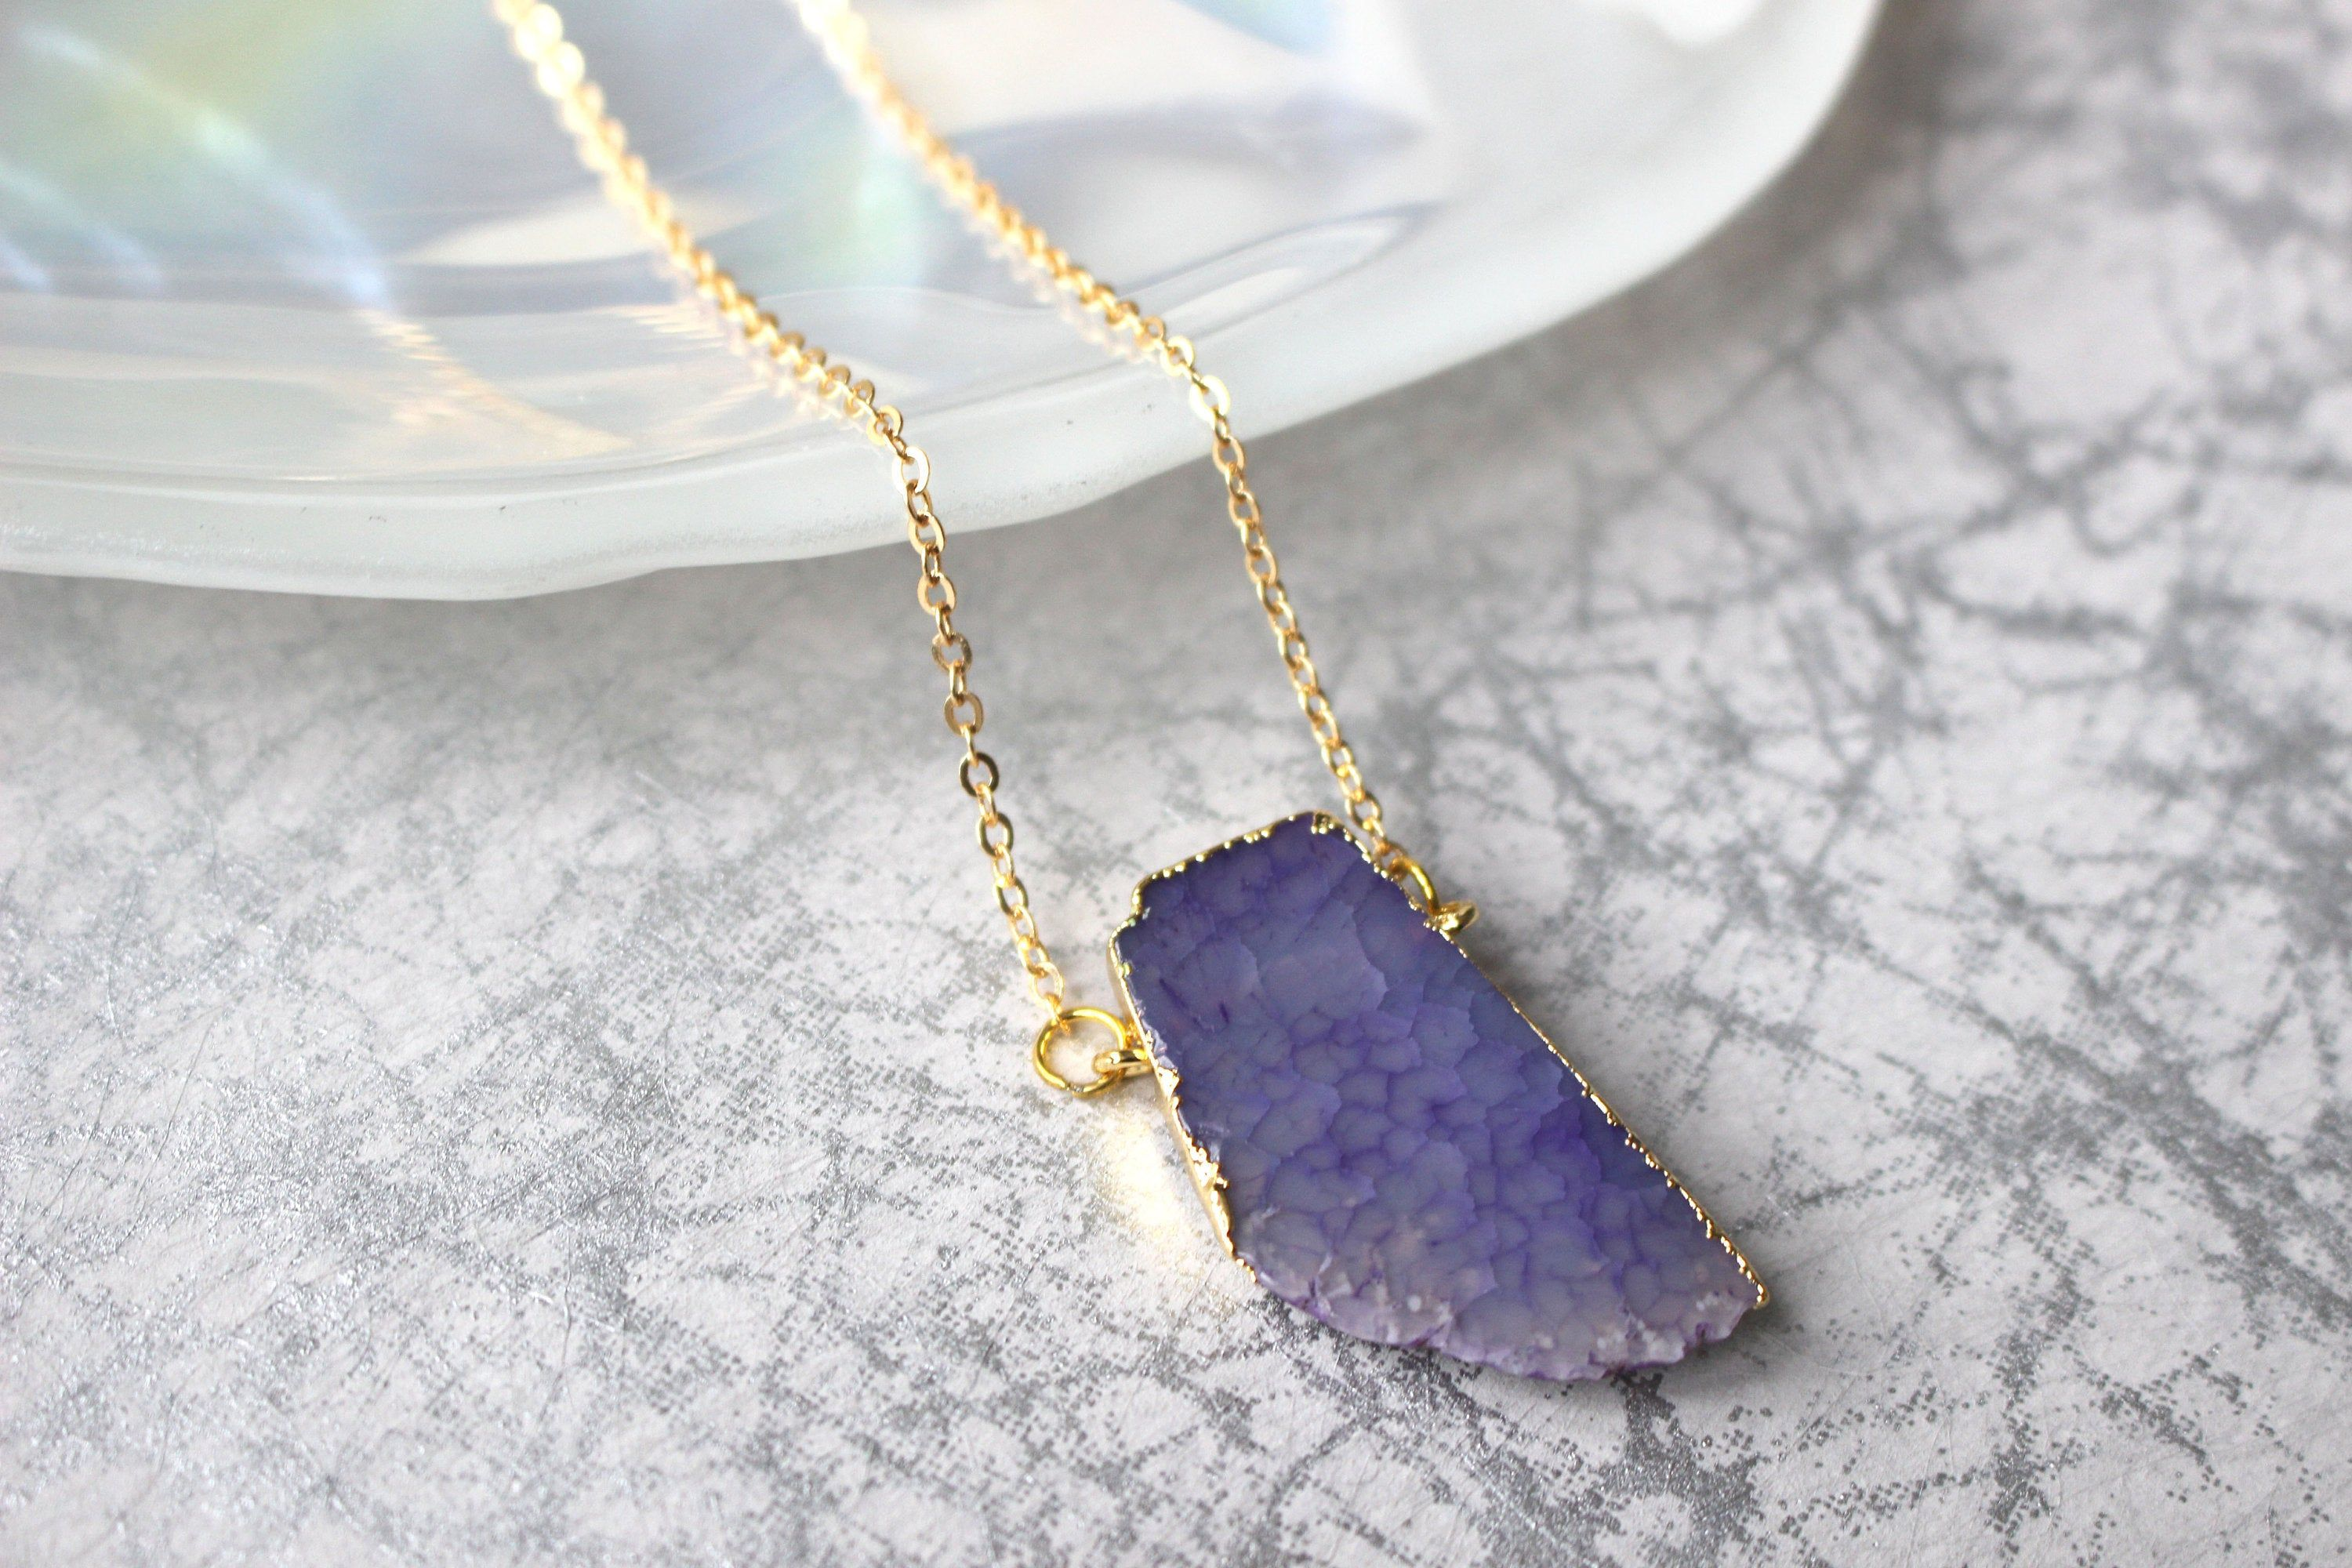 Purple Agate Crystal Gold Dipped Necklace Etsy In 2020 Purple Agate Agate Crystal Necklace Lengths